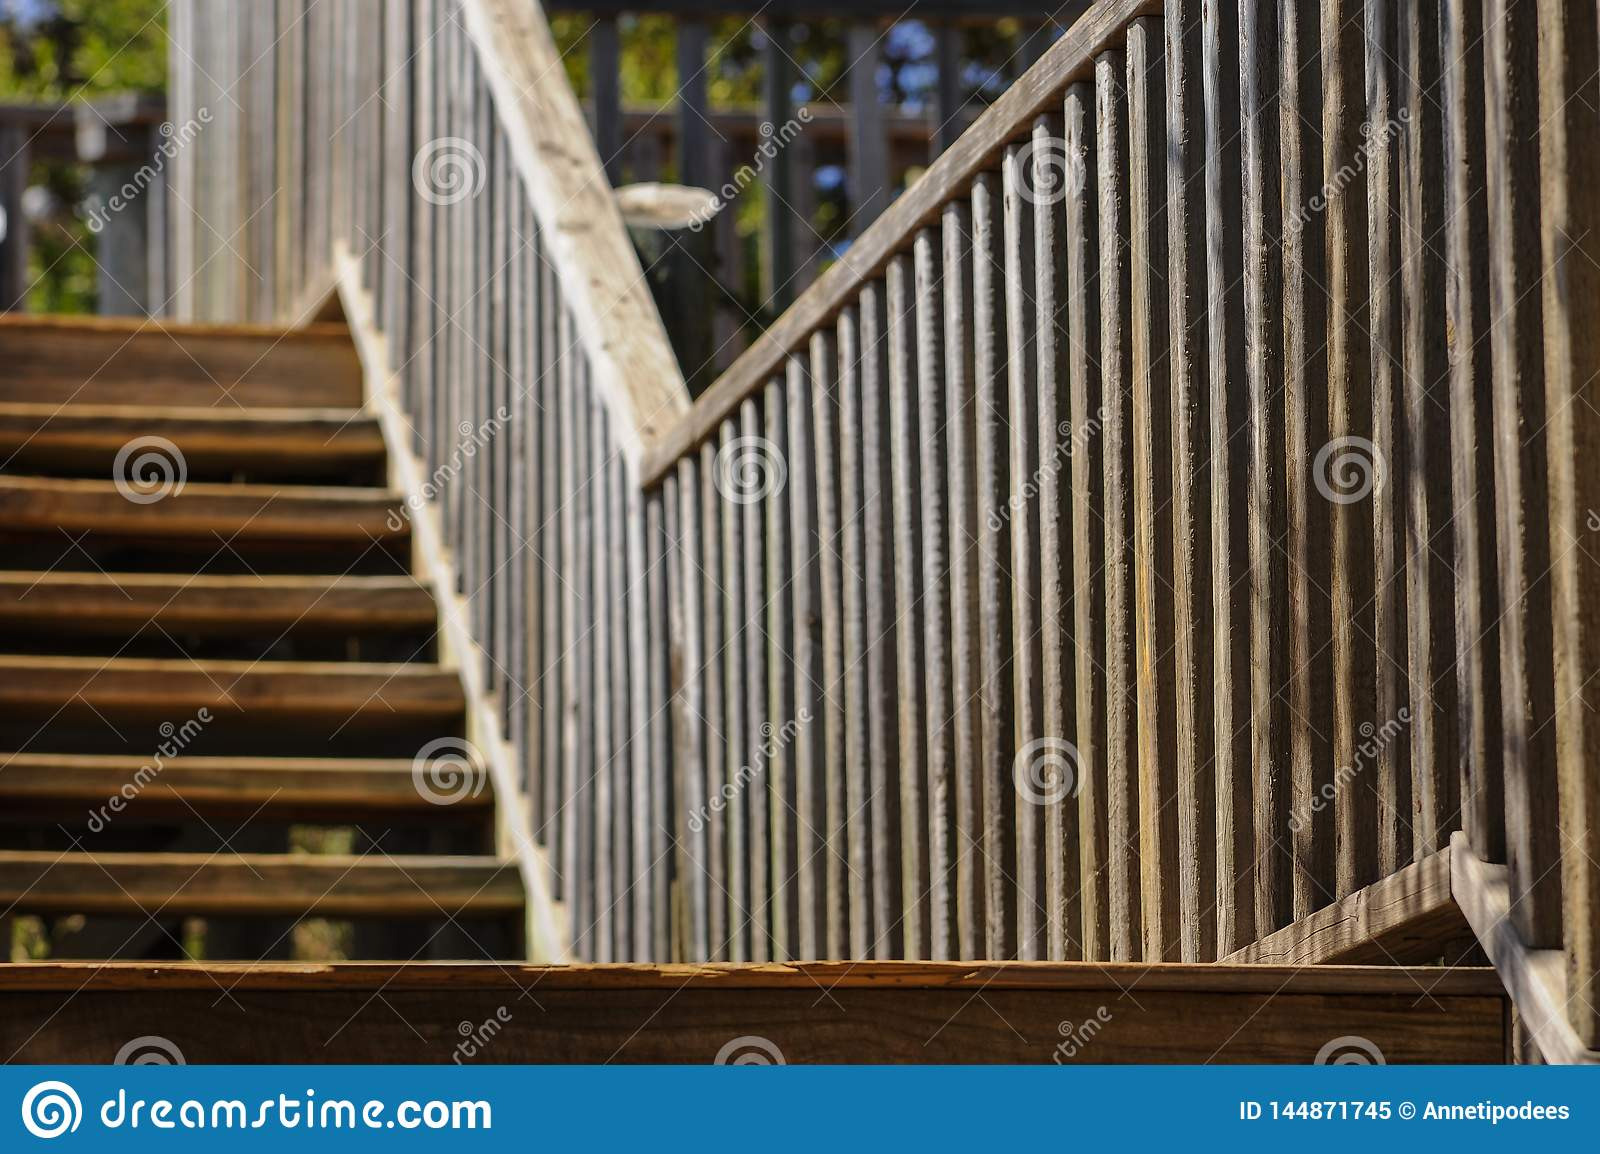 Wooden Staircase, Descending Towards The Viewer, With